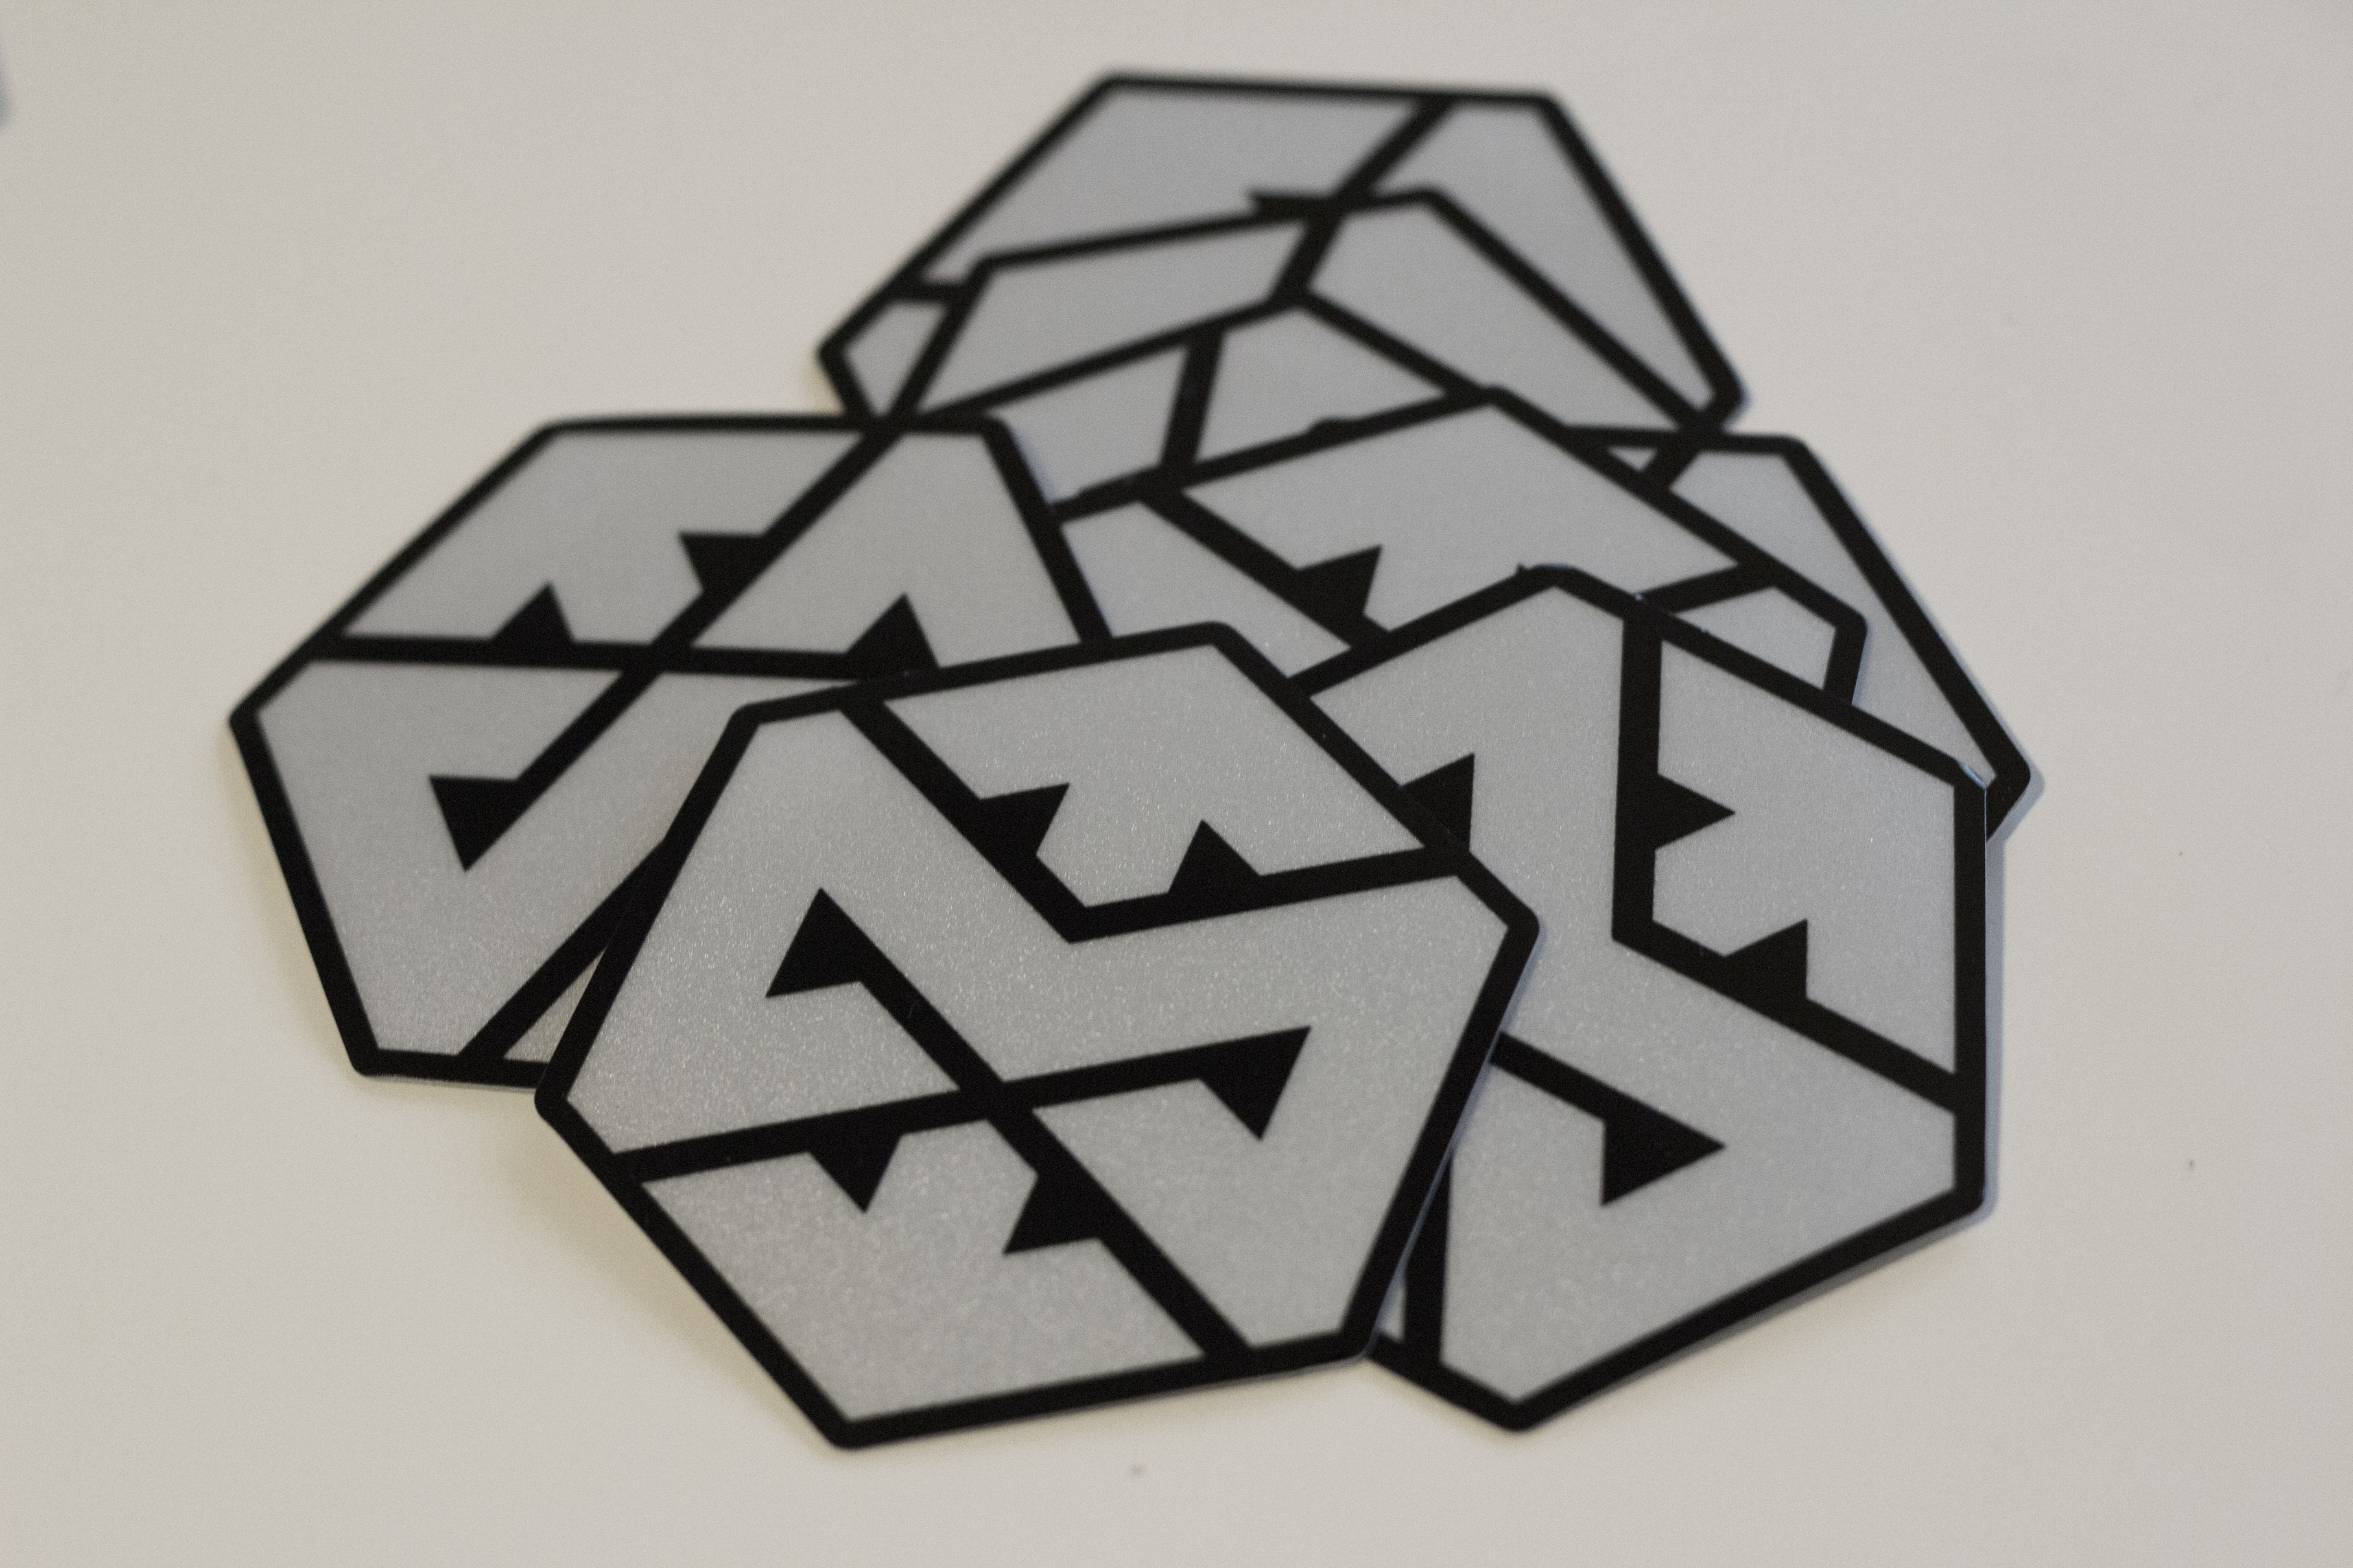 Motonosity Reflective Sticker - Silver